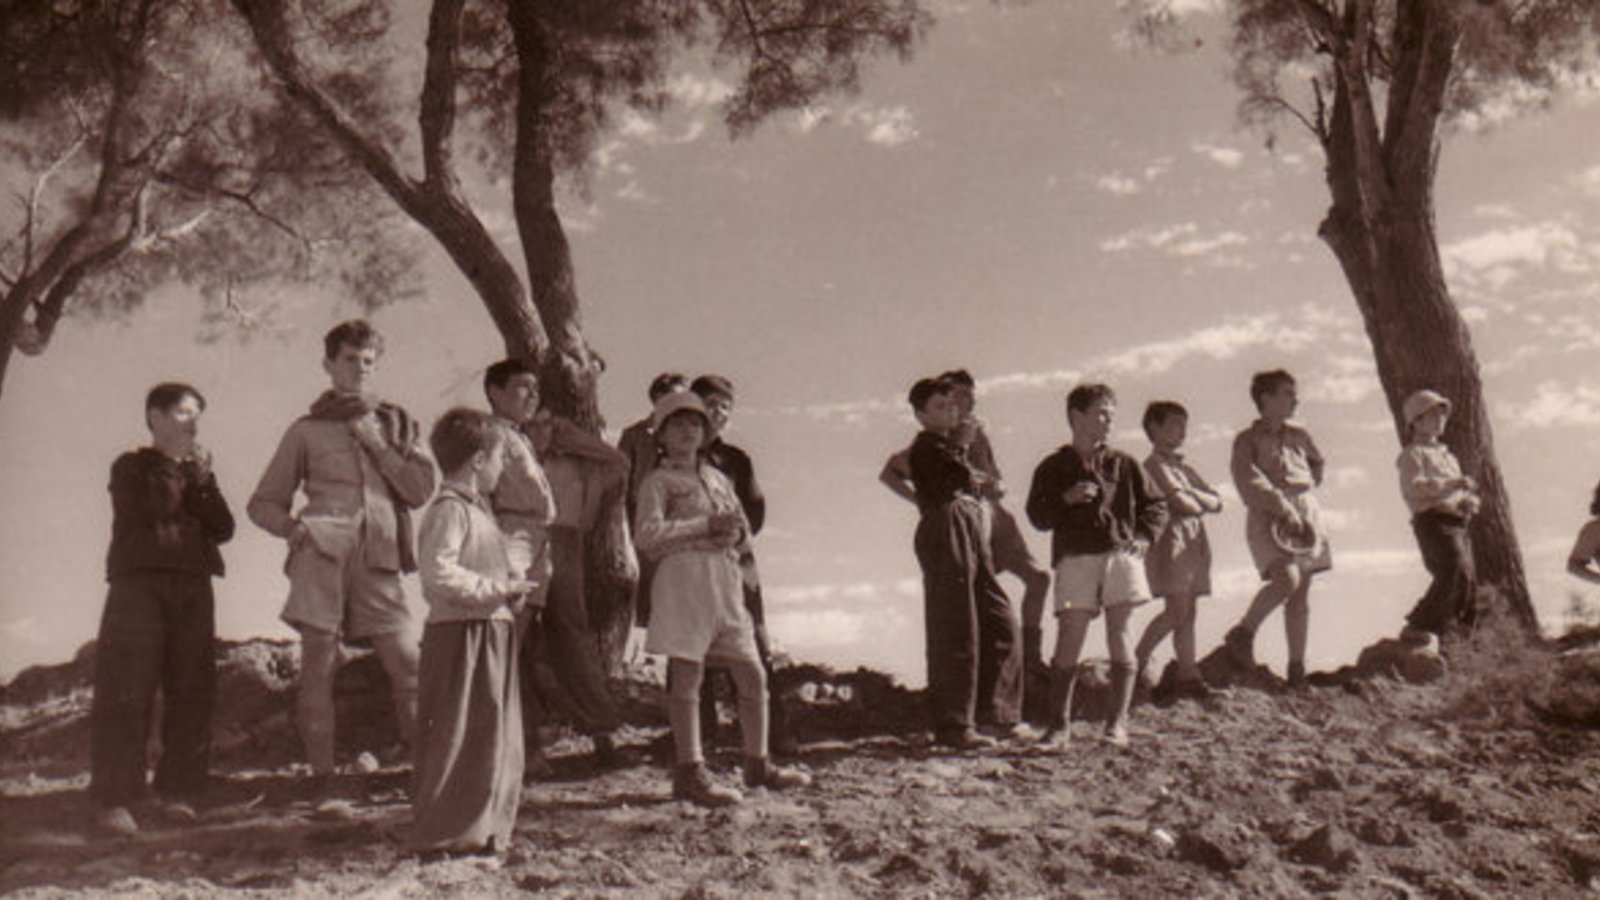 Inventing Our Life - The Kibbutz Experiment